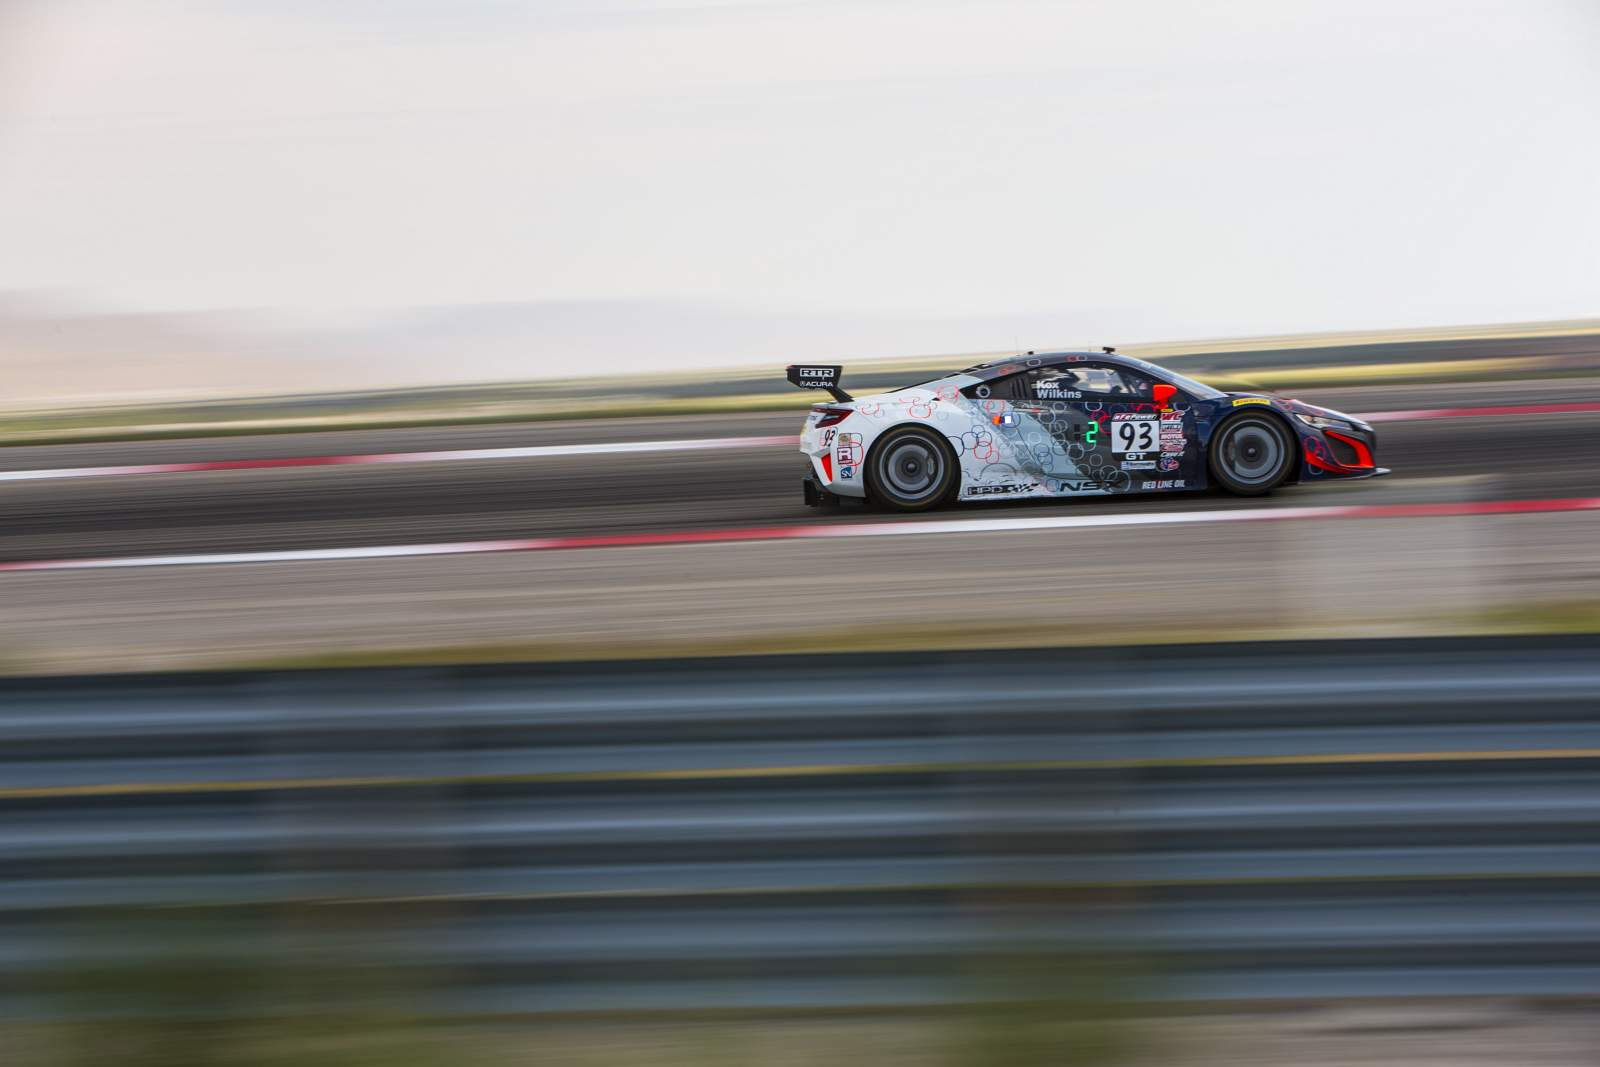 peter-kox-realtime-racing-pirelli-world-challenge-utah-motorsport-campus--210